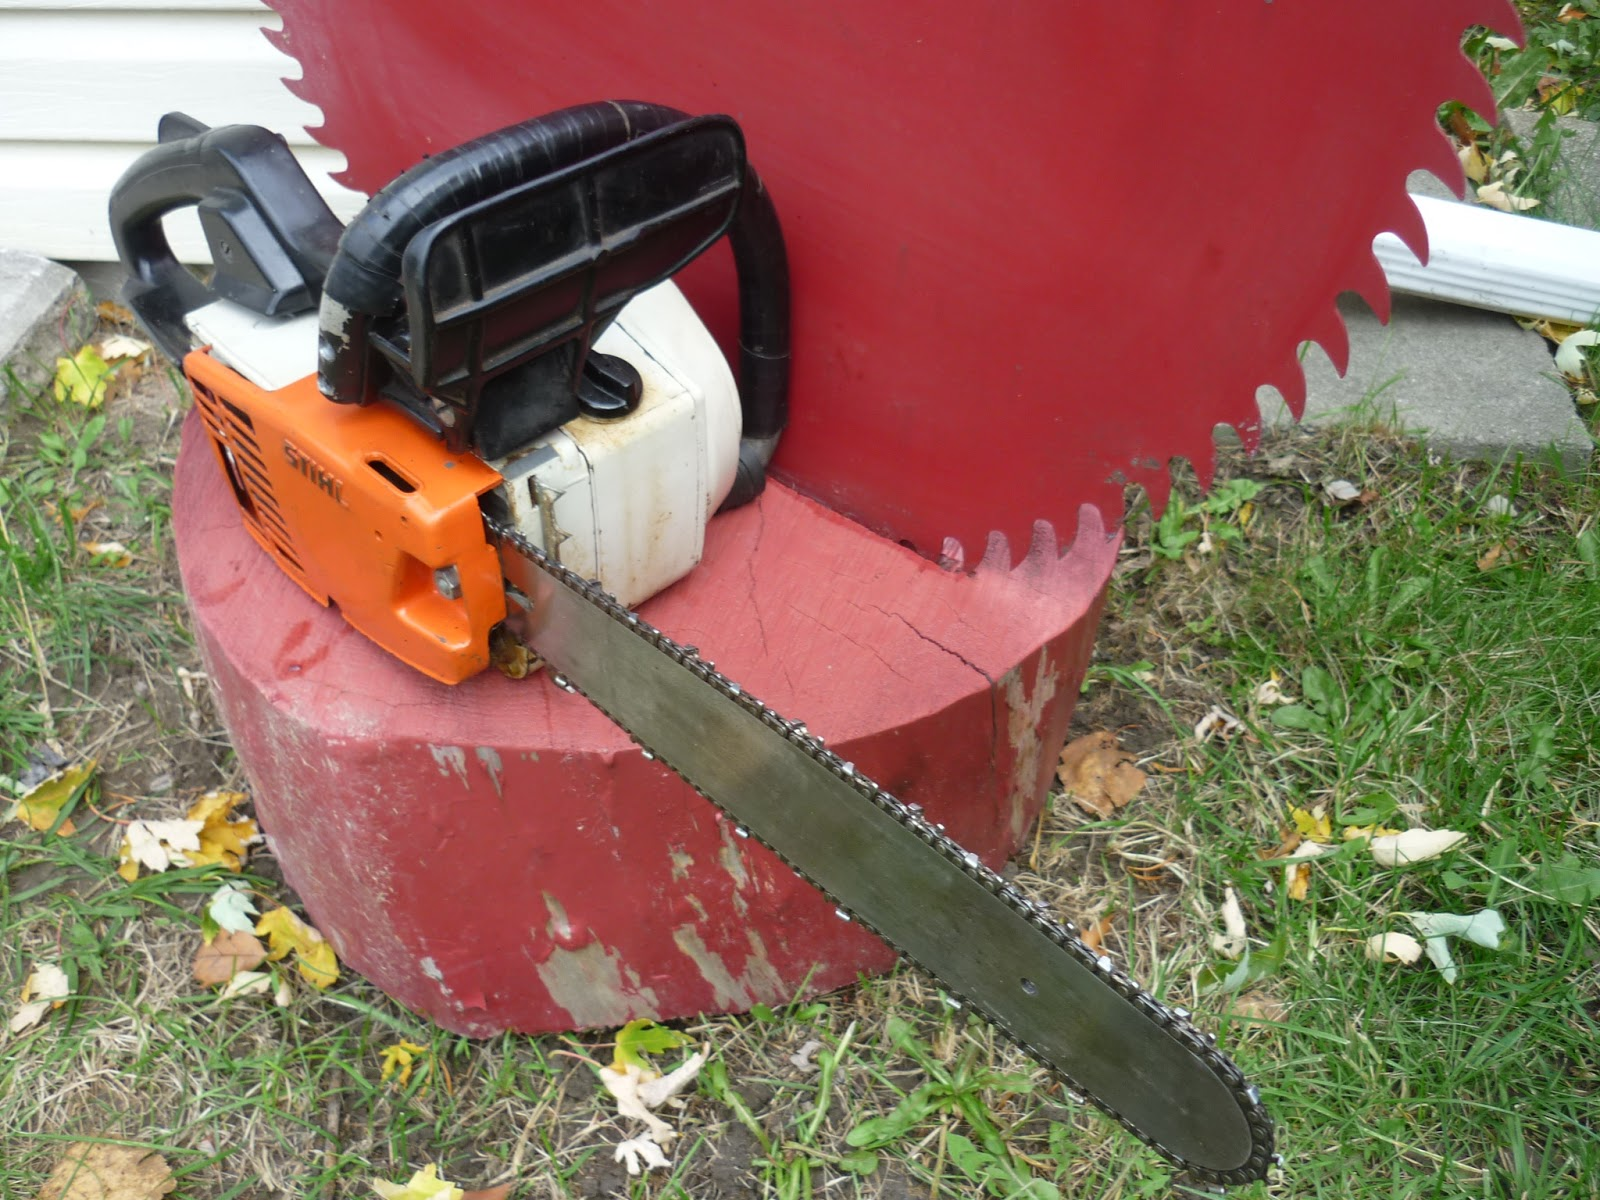 Model: 020 AVP MANUFACTURED BY: STIHL ANDREAS MASCHINENFABRIK STUTTGART,  GERMANY SERIES OR ASSEMBLY NUMBER: 1129 YEAR INTRODUCED: YEAR DISCONTINUED:  ENGINE ...